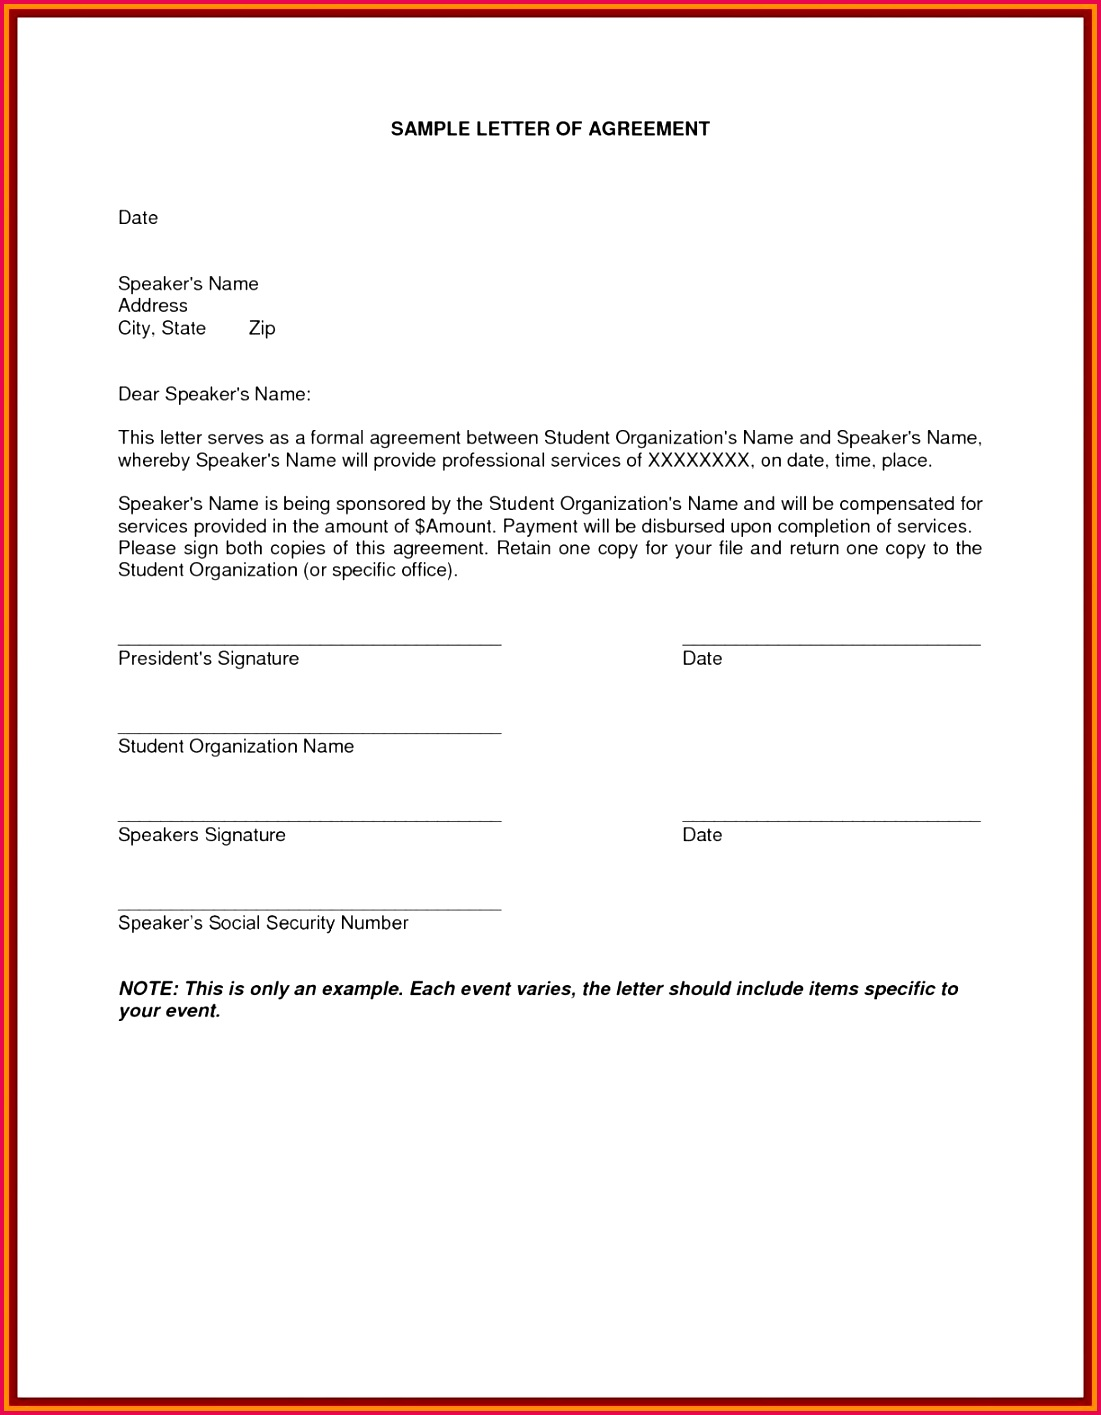 Loan Agreement Letter format Awesome Agreement Letter New Bet Contract Template Elegant Money Lending